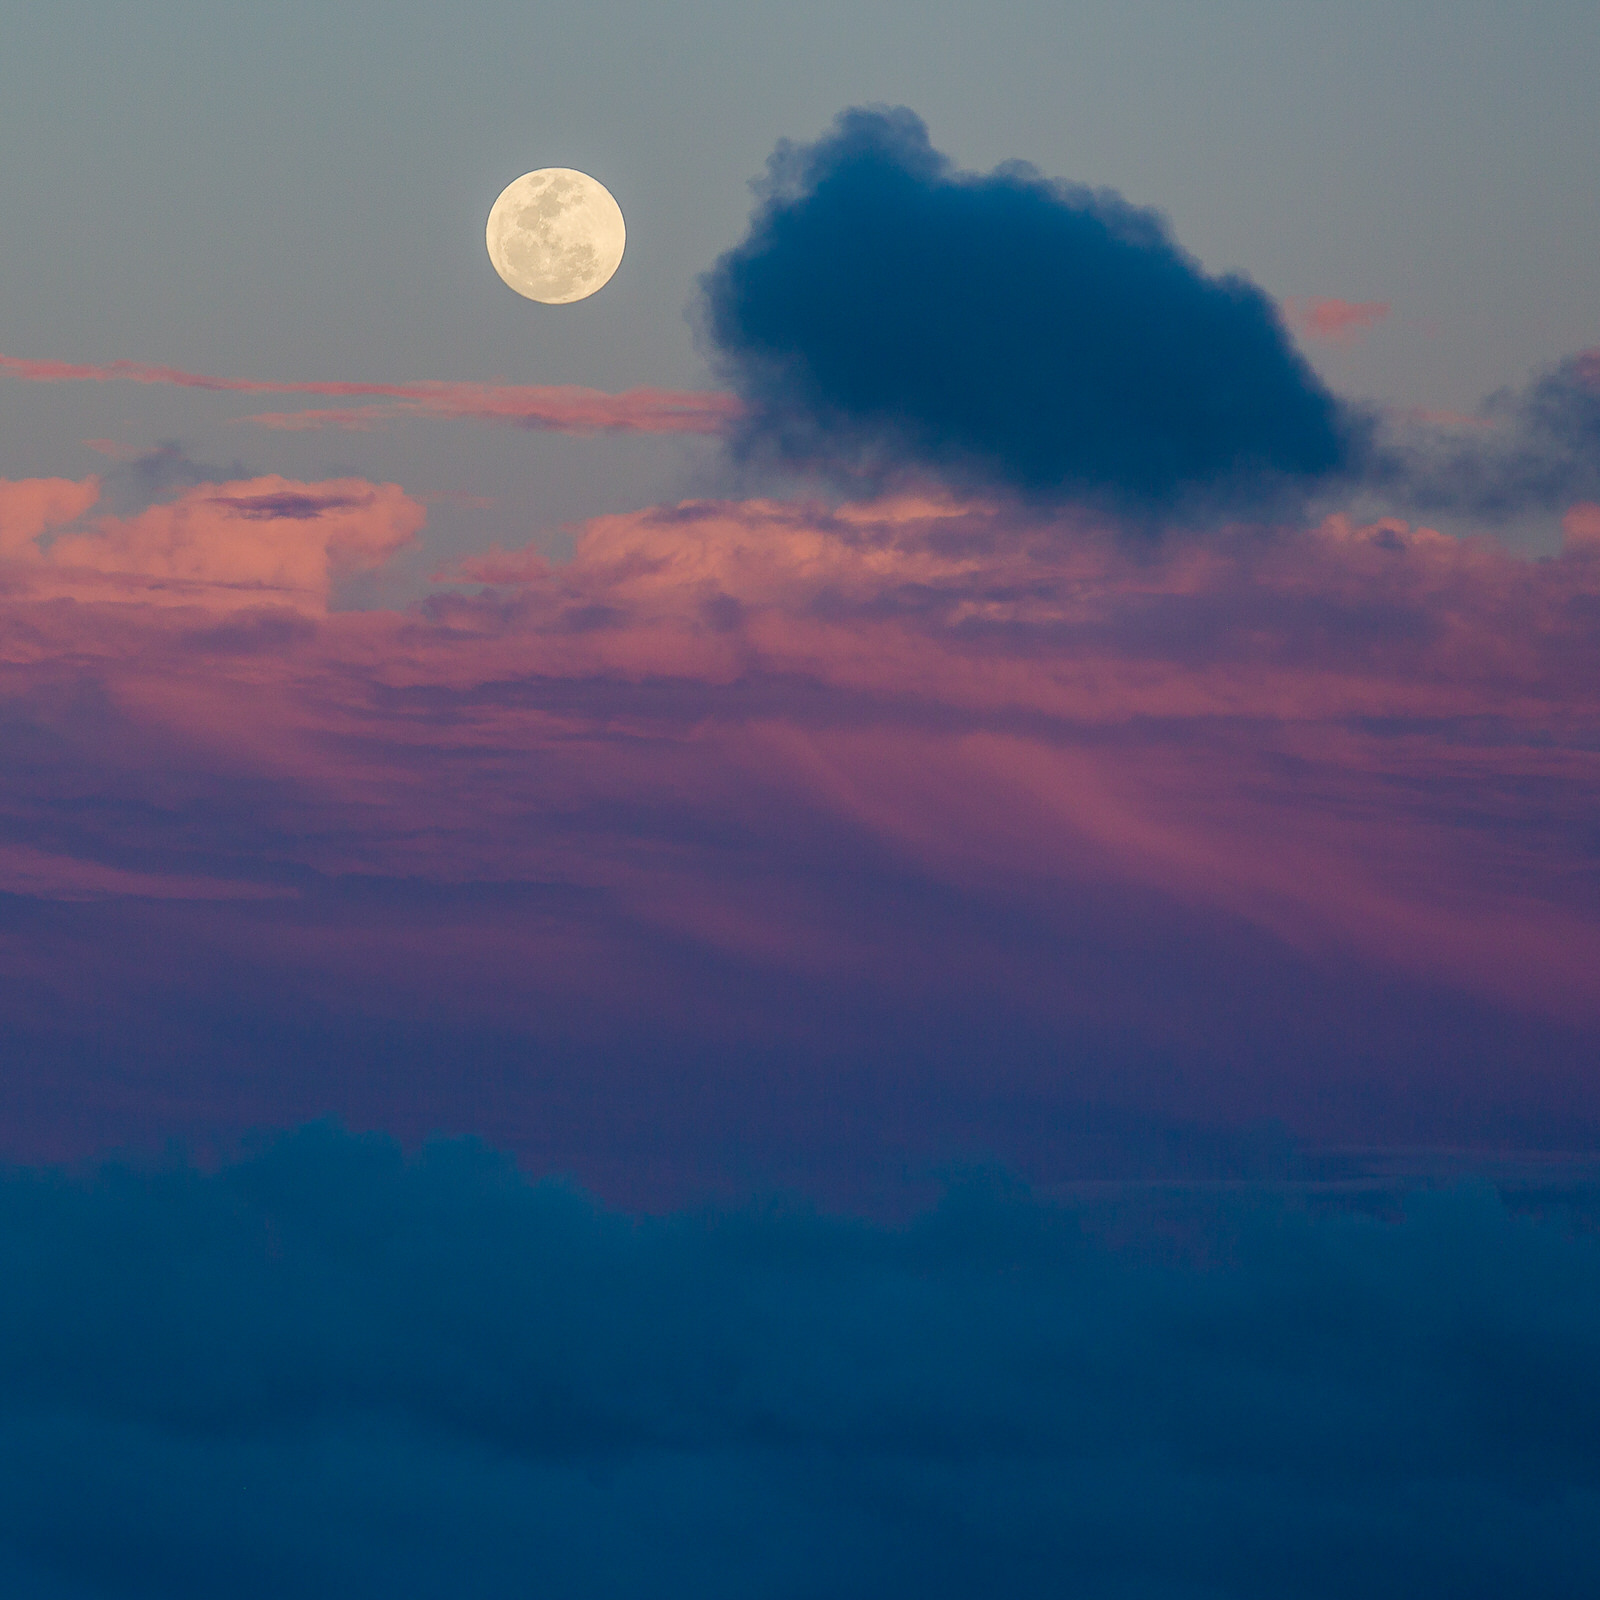 Sunset and full moonrise on Kauai